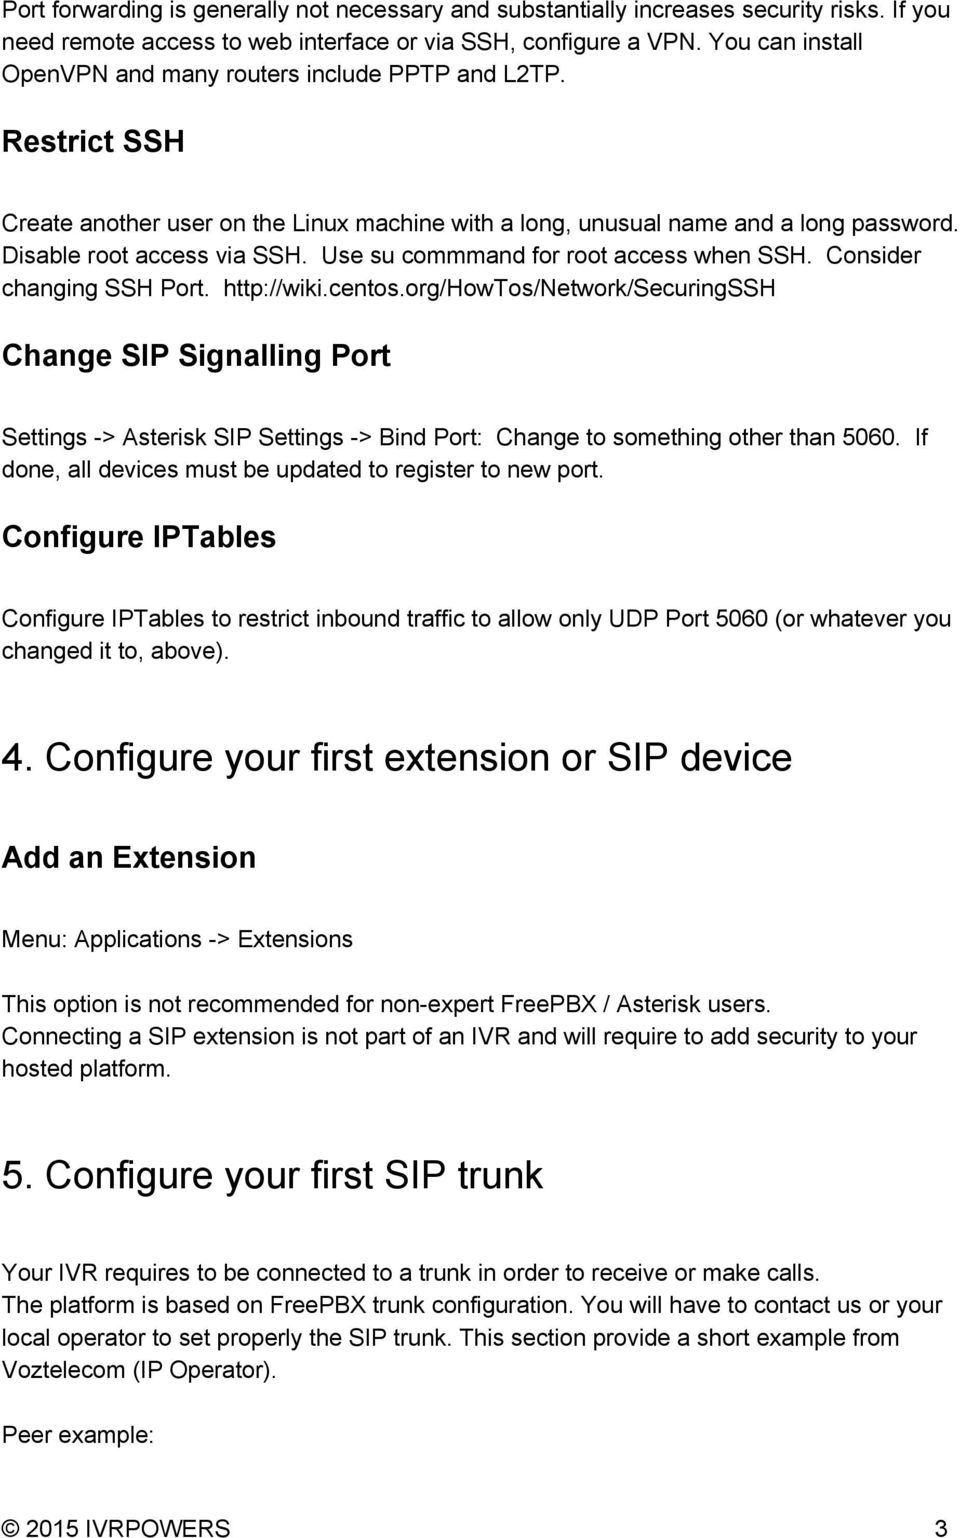 Use su commmand for root access when SSH. Consider changing SSH Port. http://wiki.centos.